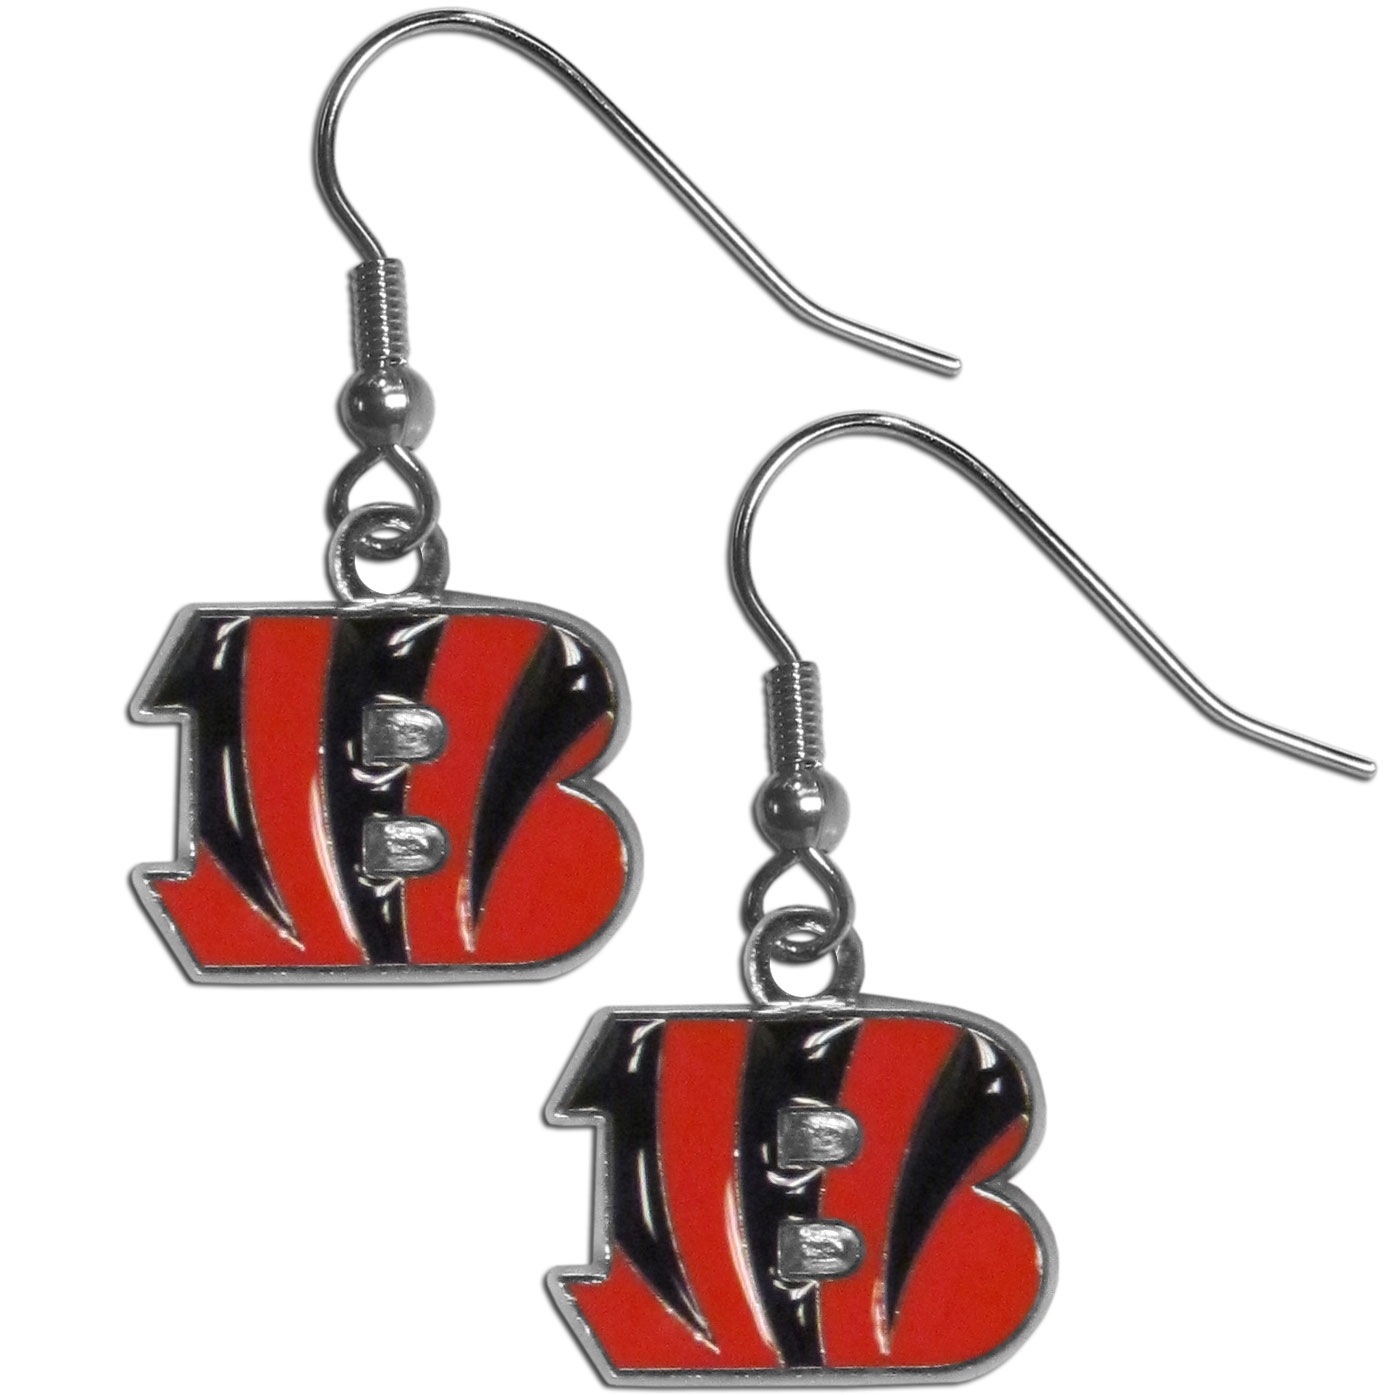 Cincinnati Bengals Chrome Dangle Earrings - Officially licensed NFL Cincinnati Bengals dangle earrings have fully cast Cincinnati Bengals charms with exceptional detail and a hand enameled finish. The Cincinnati Bengals earrings have a high polish nickel free chrome finish and hypoallergenic fishhook posts. Officially licensed NFL product Licensee: Siskiyou Buckle Thank you for visiting CrazedOutSports.com